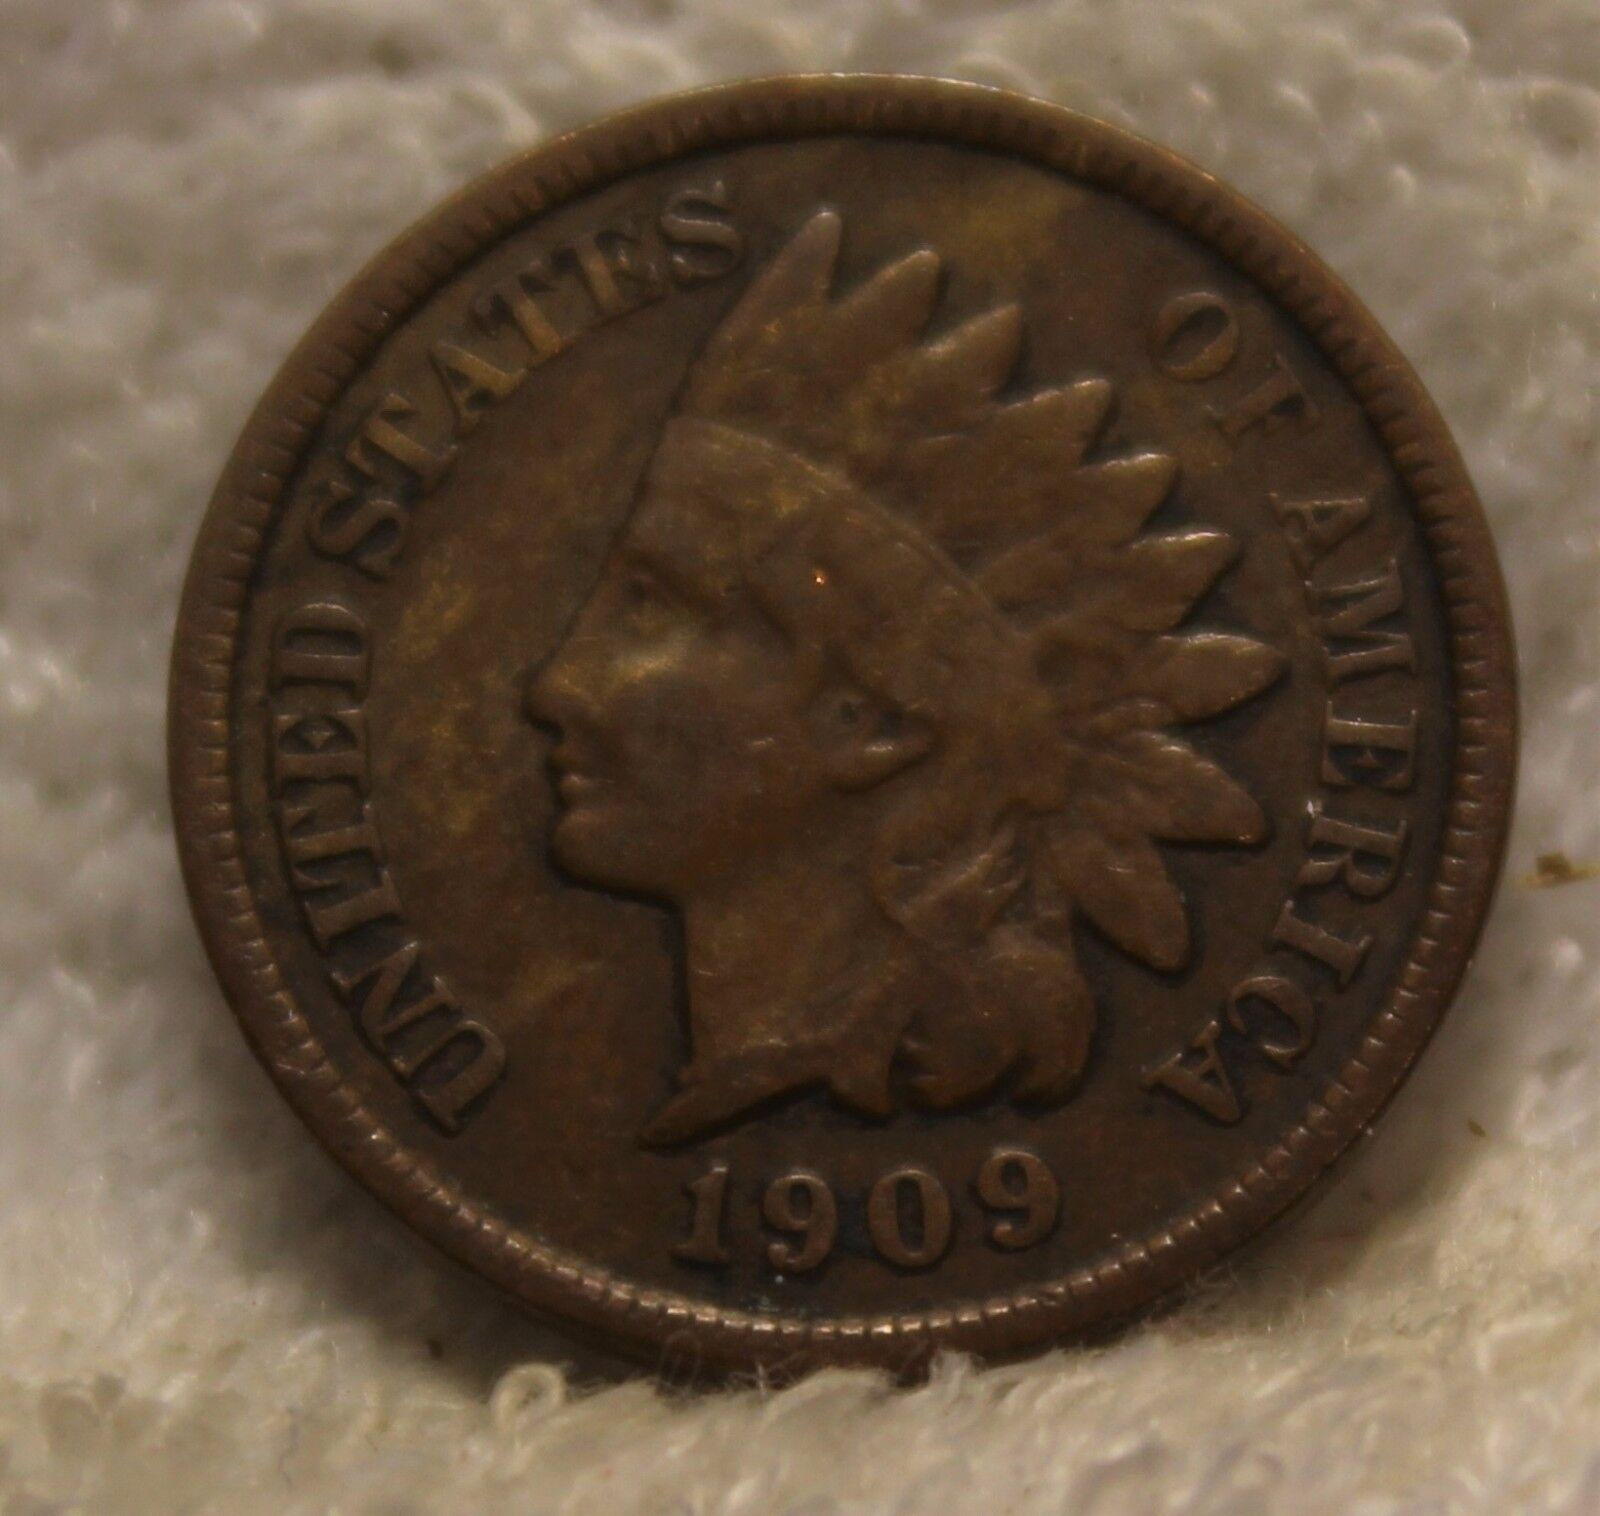 1909 Indian Head Penny - $7.50